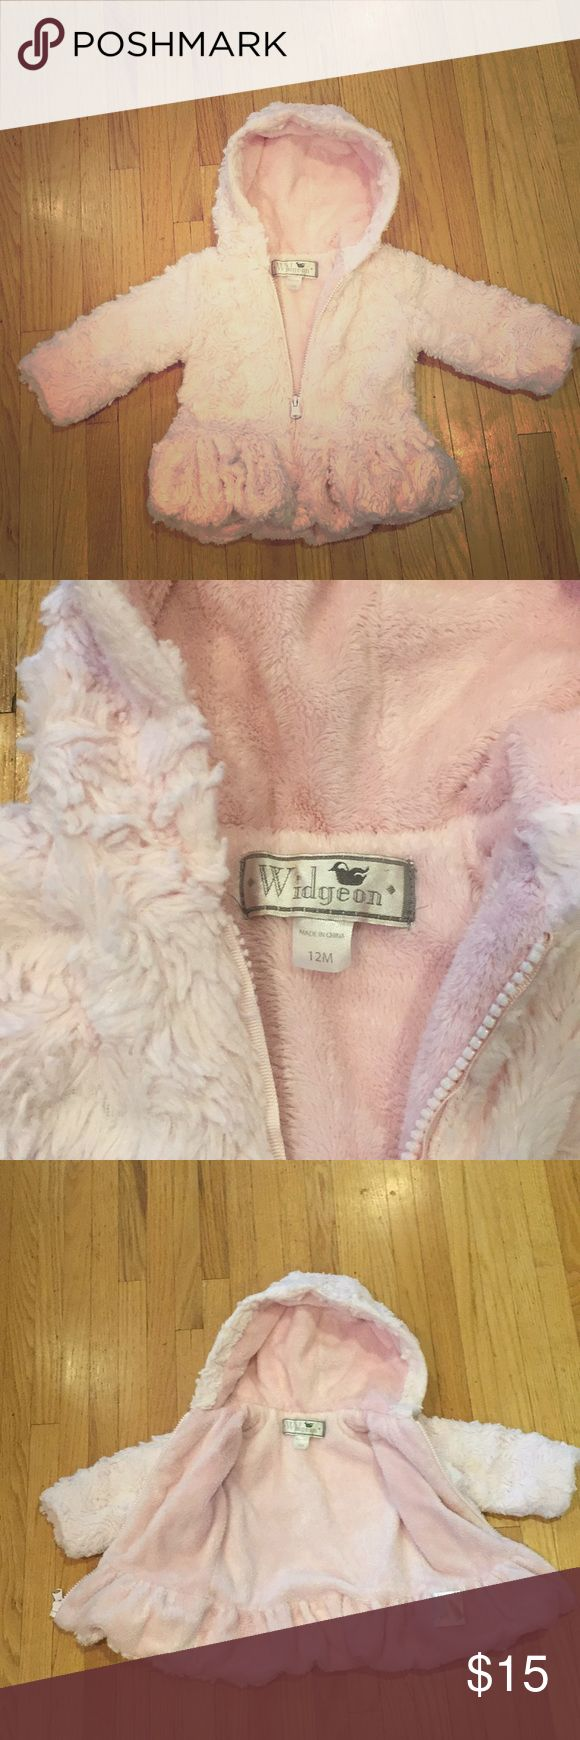 Widgeon Pink Faux Fur Coat Widgeon pink baby girl faux fur coat, very soft, in a great condition Widgeon Jackets & Coats